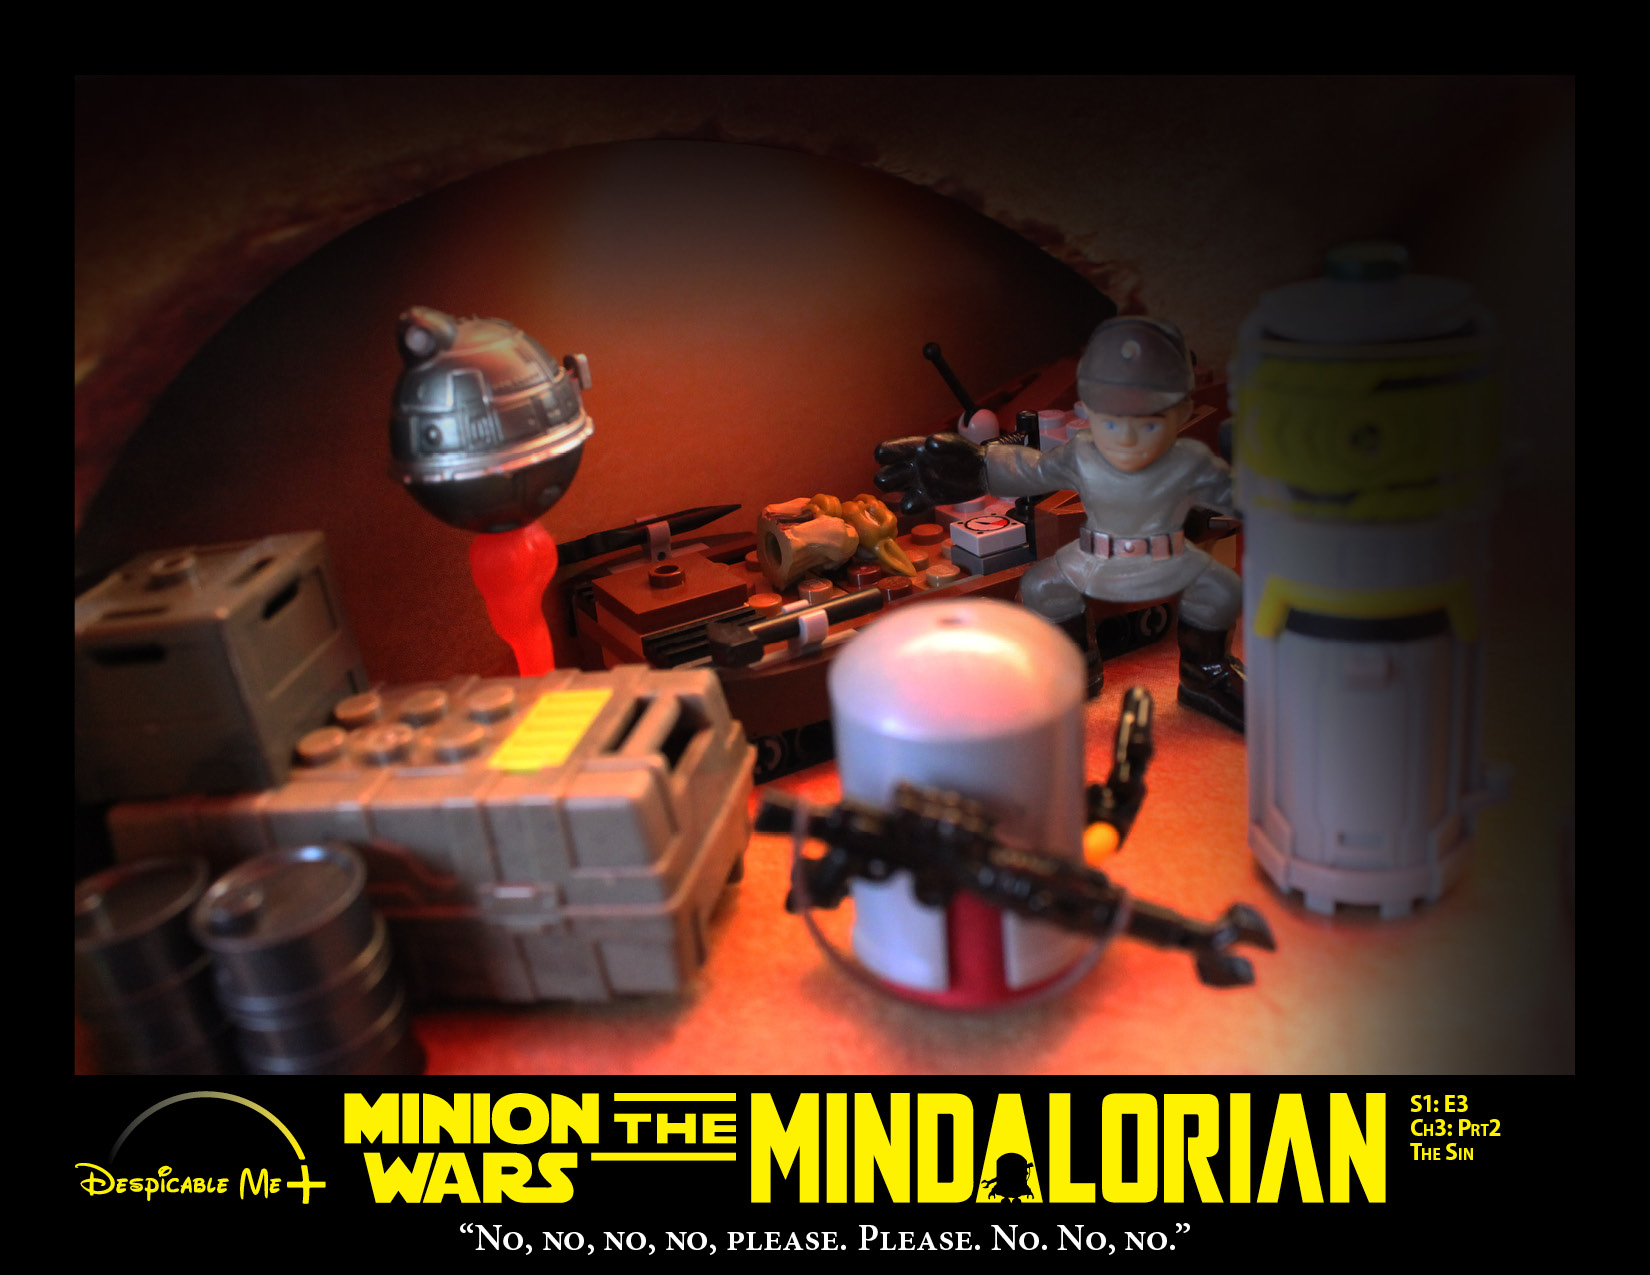 The Mindalorian moves in to reclaim the foundling.